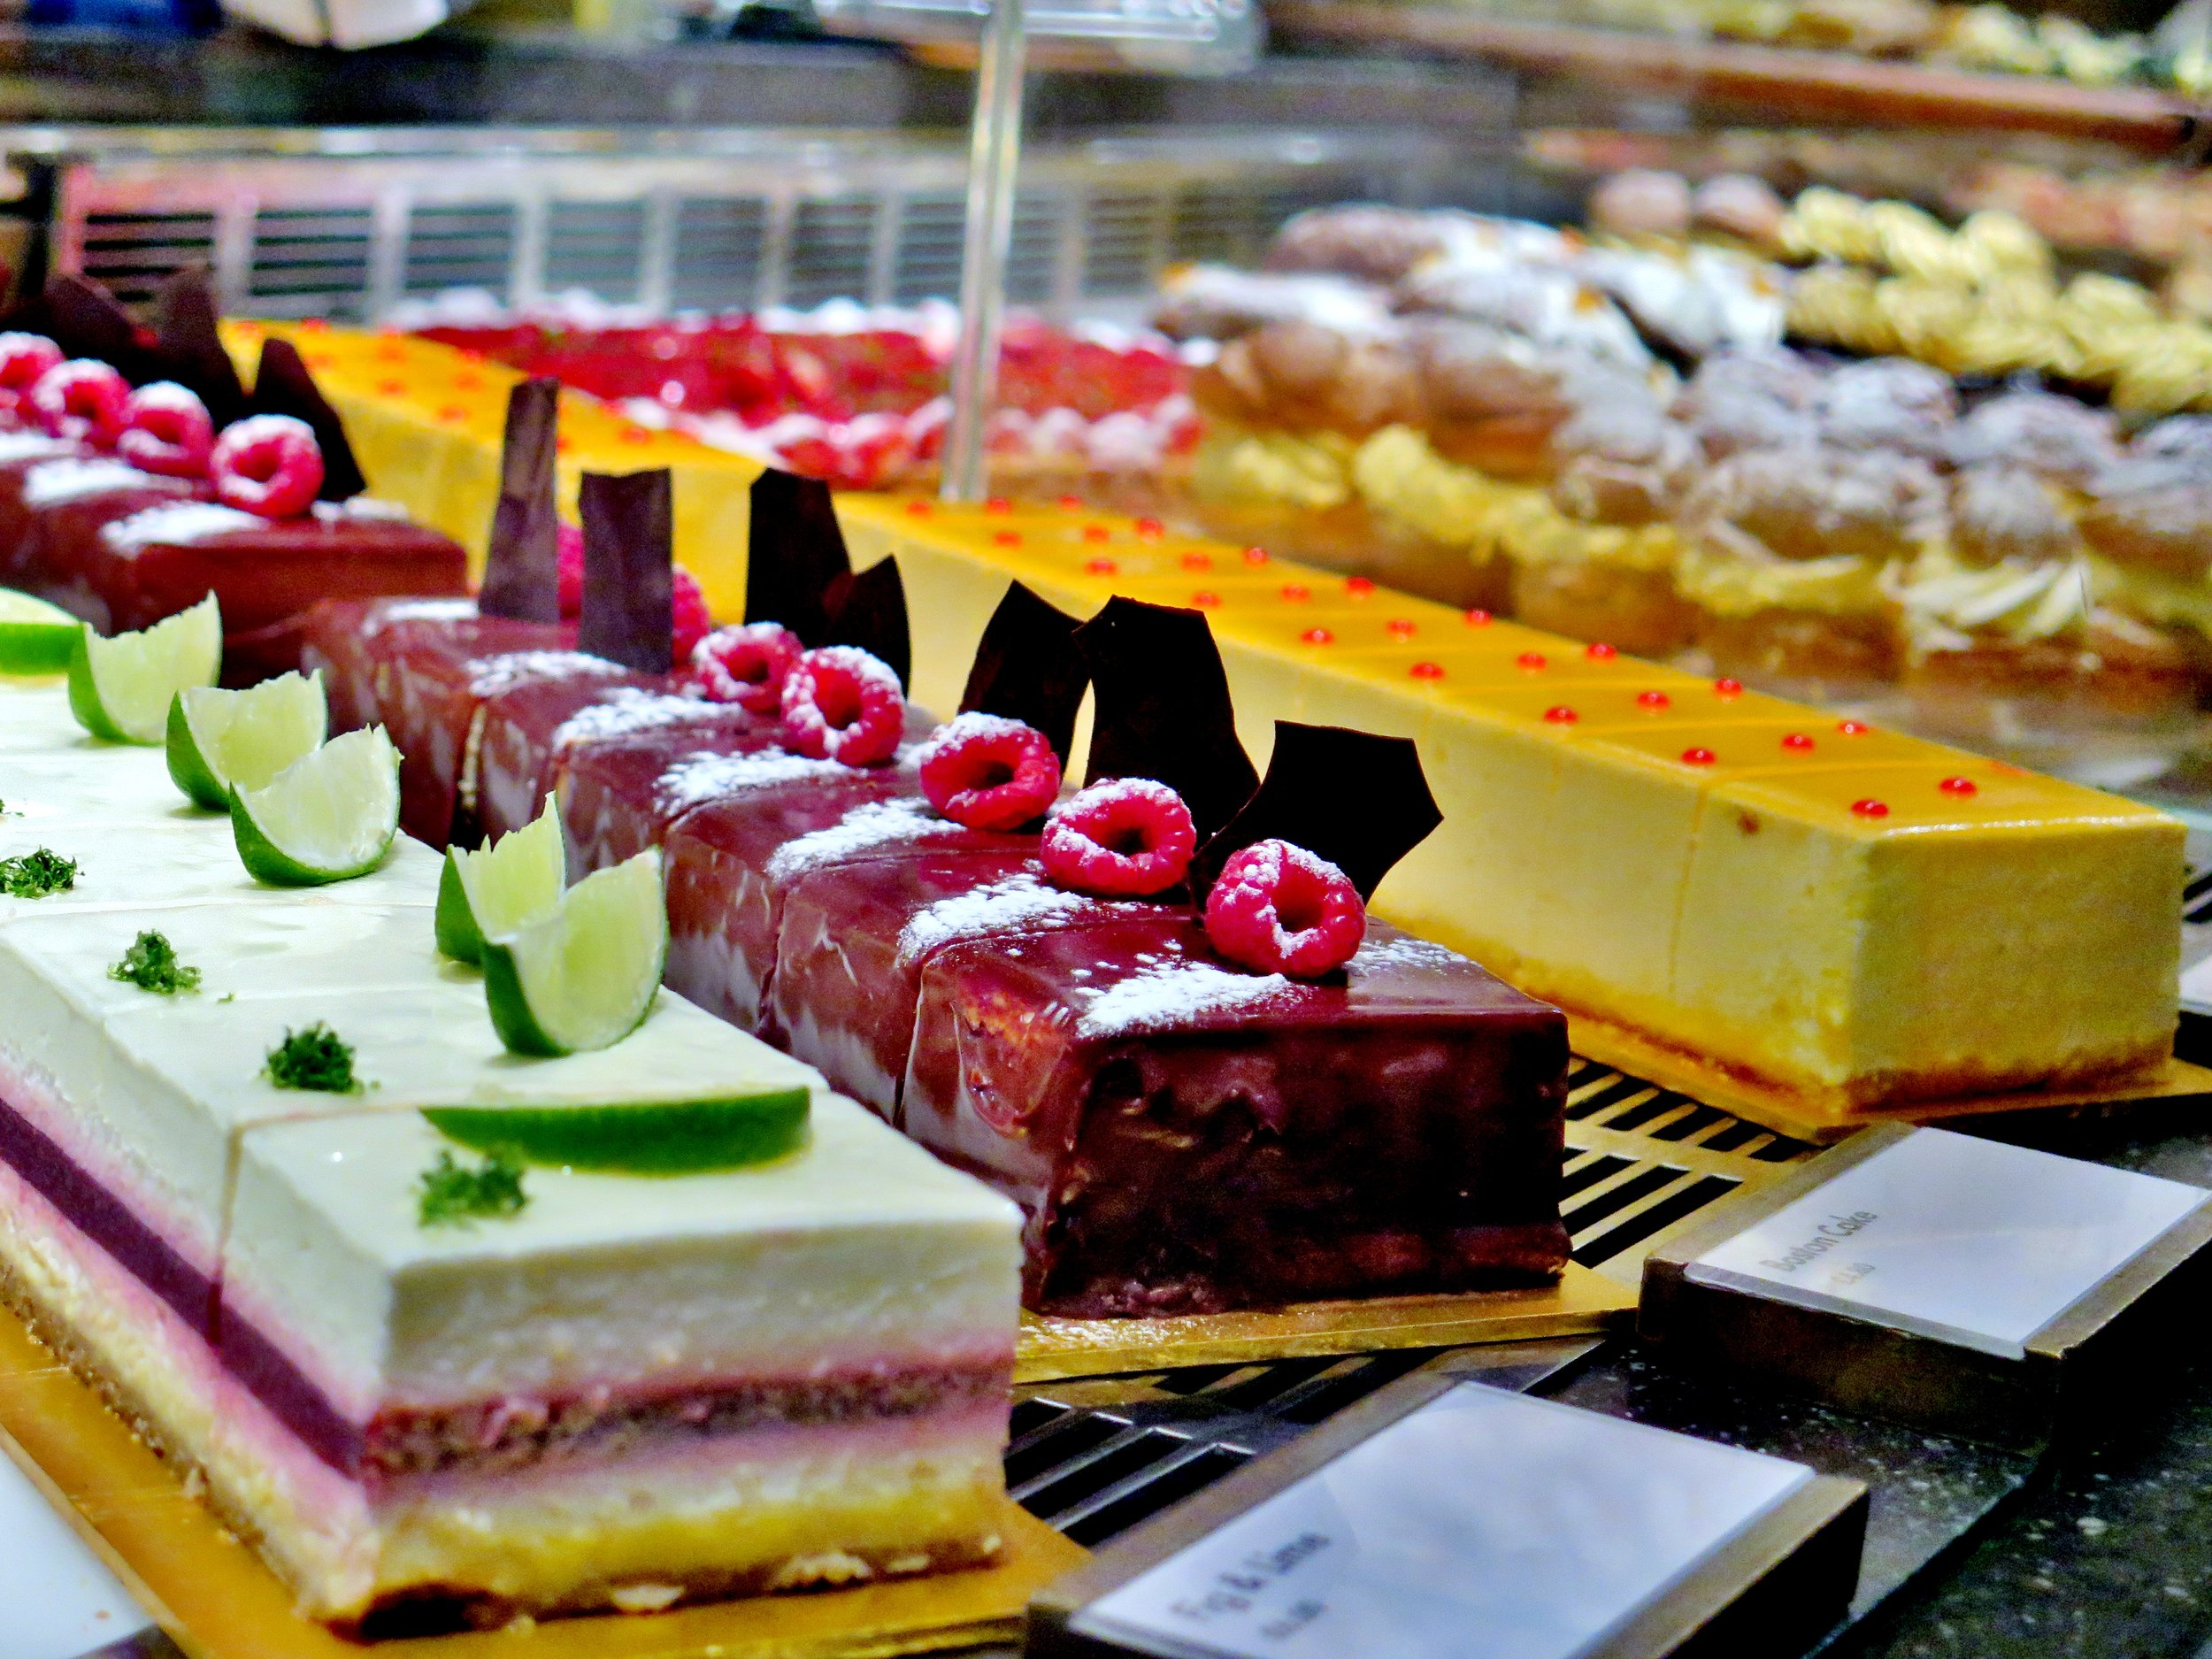 Princi - Top 5 Cakes in London